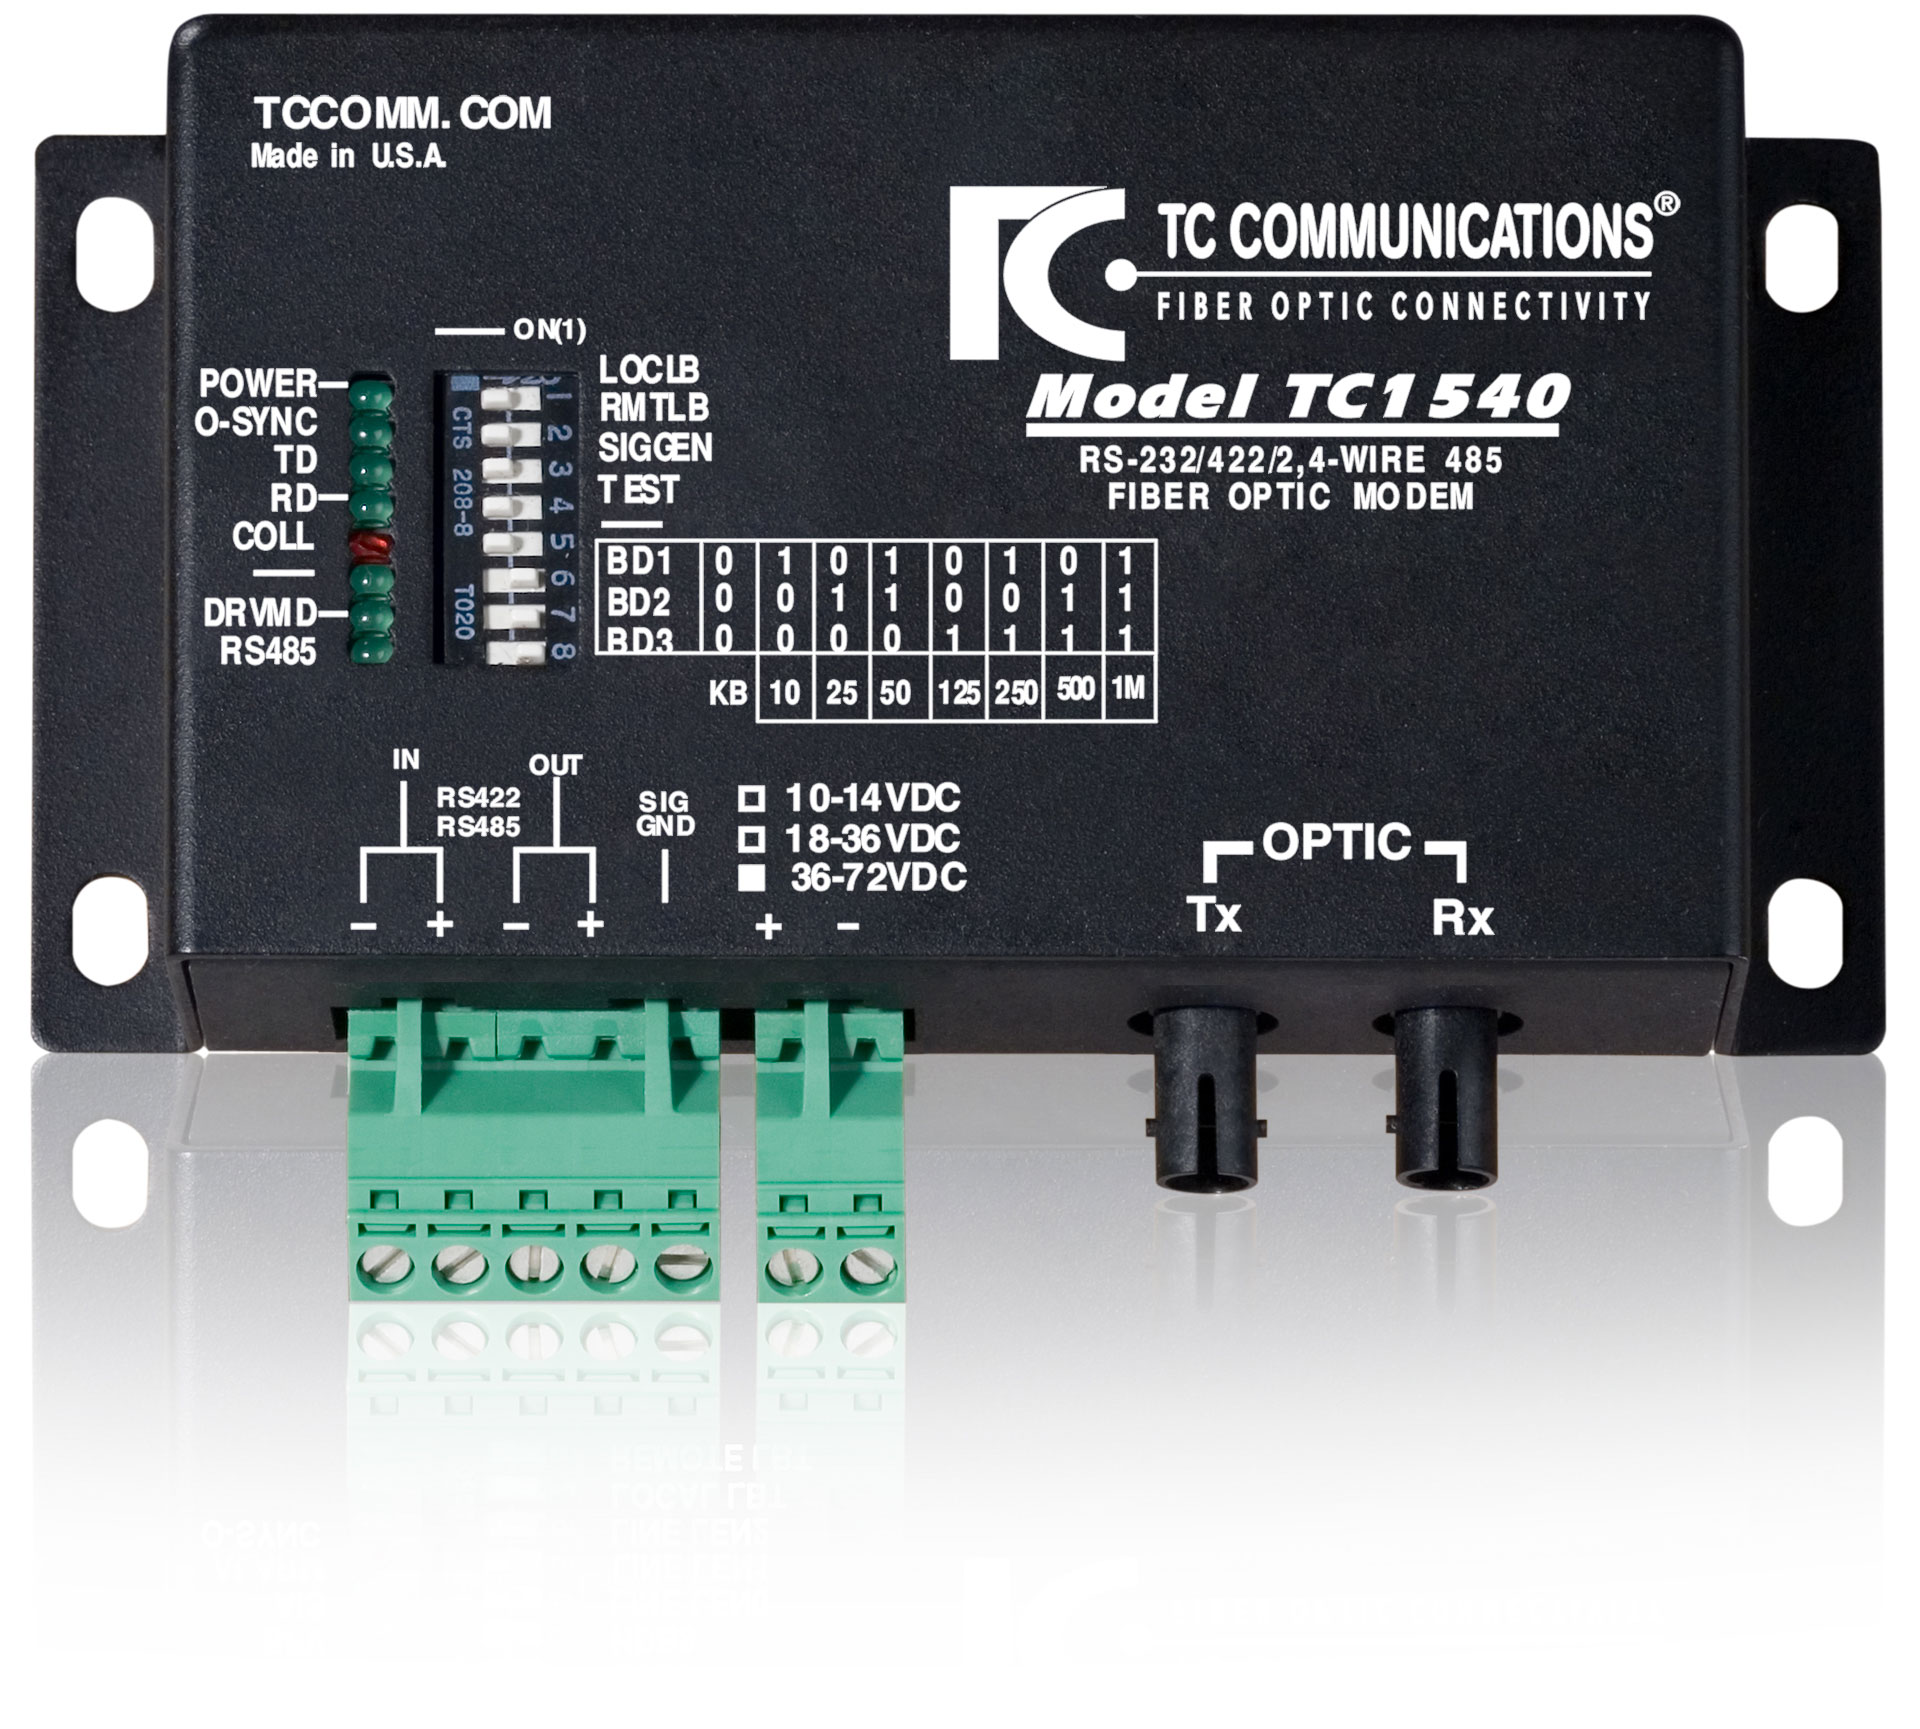 TC1540 Multi-Interface Async Fiber Optic Modem - TC Communications